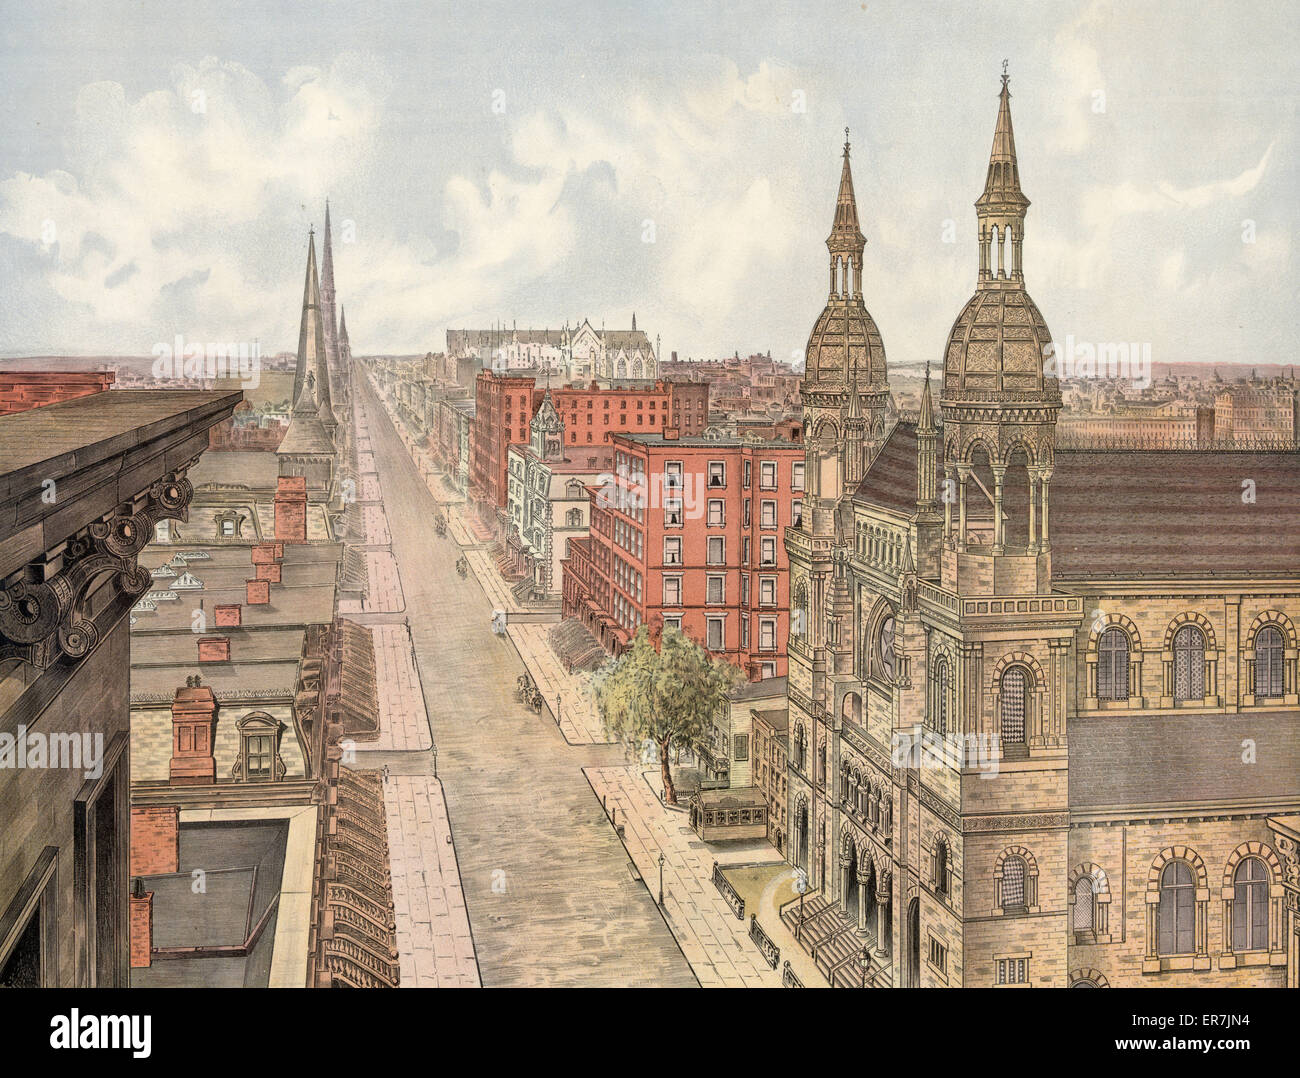 Fifth avenue from 42nd street, looking north. Published 1904. - Stock Image